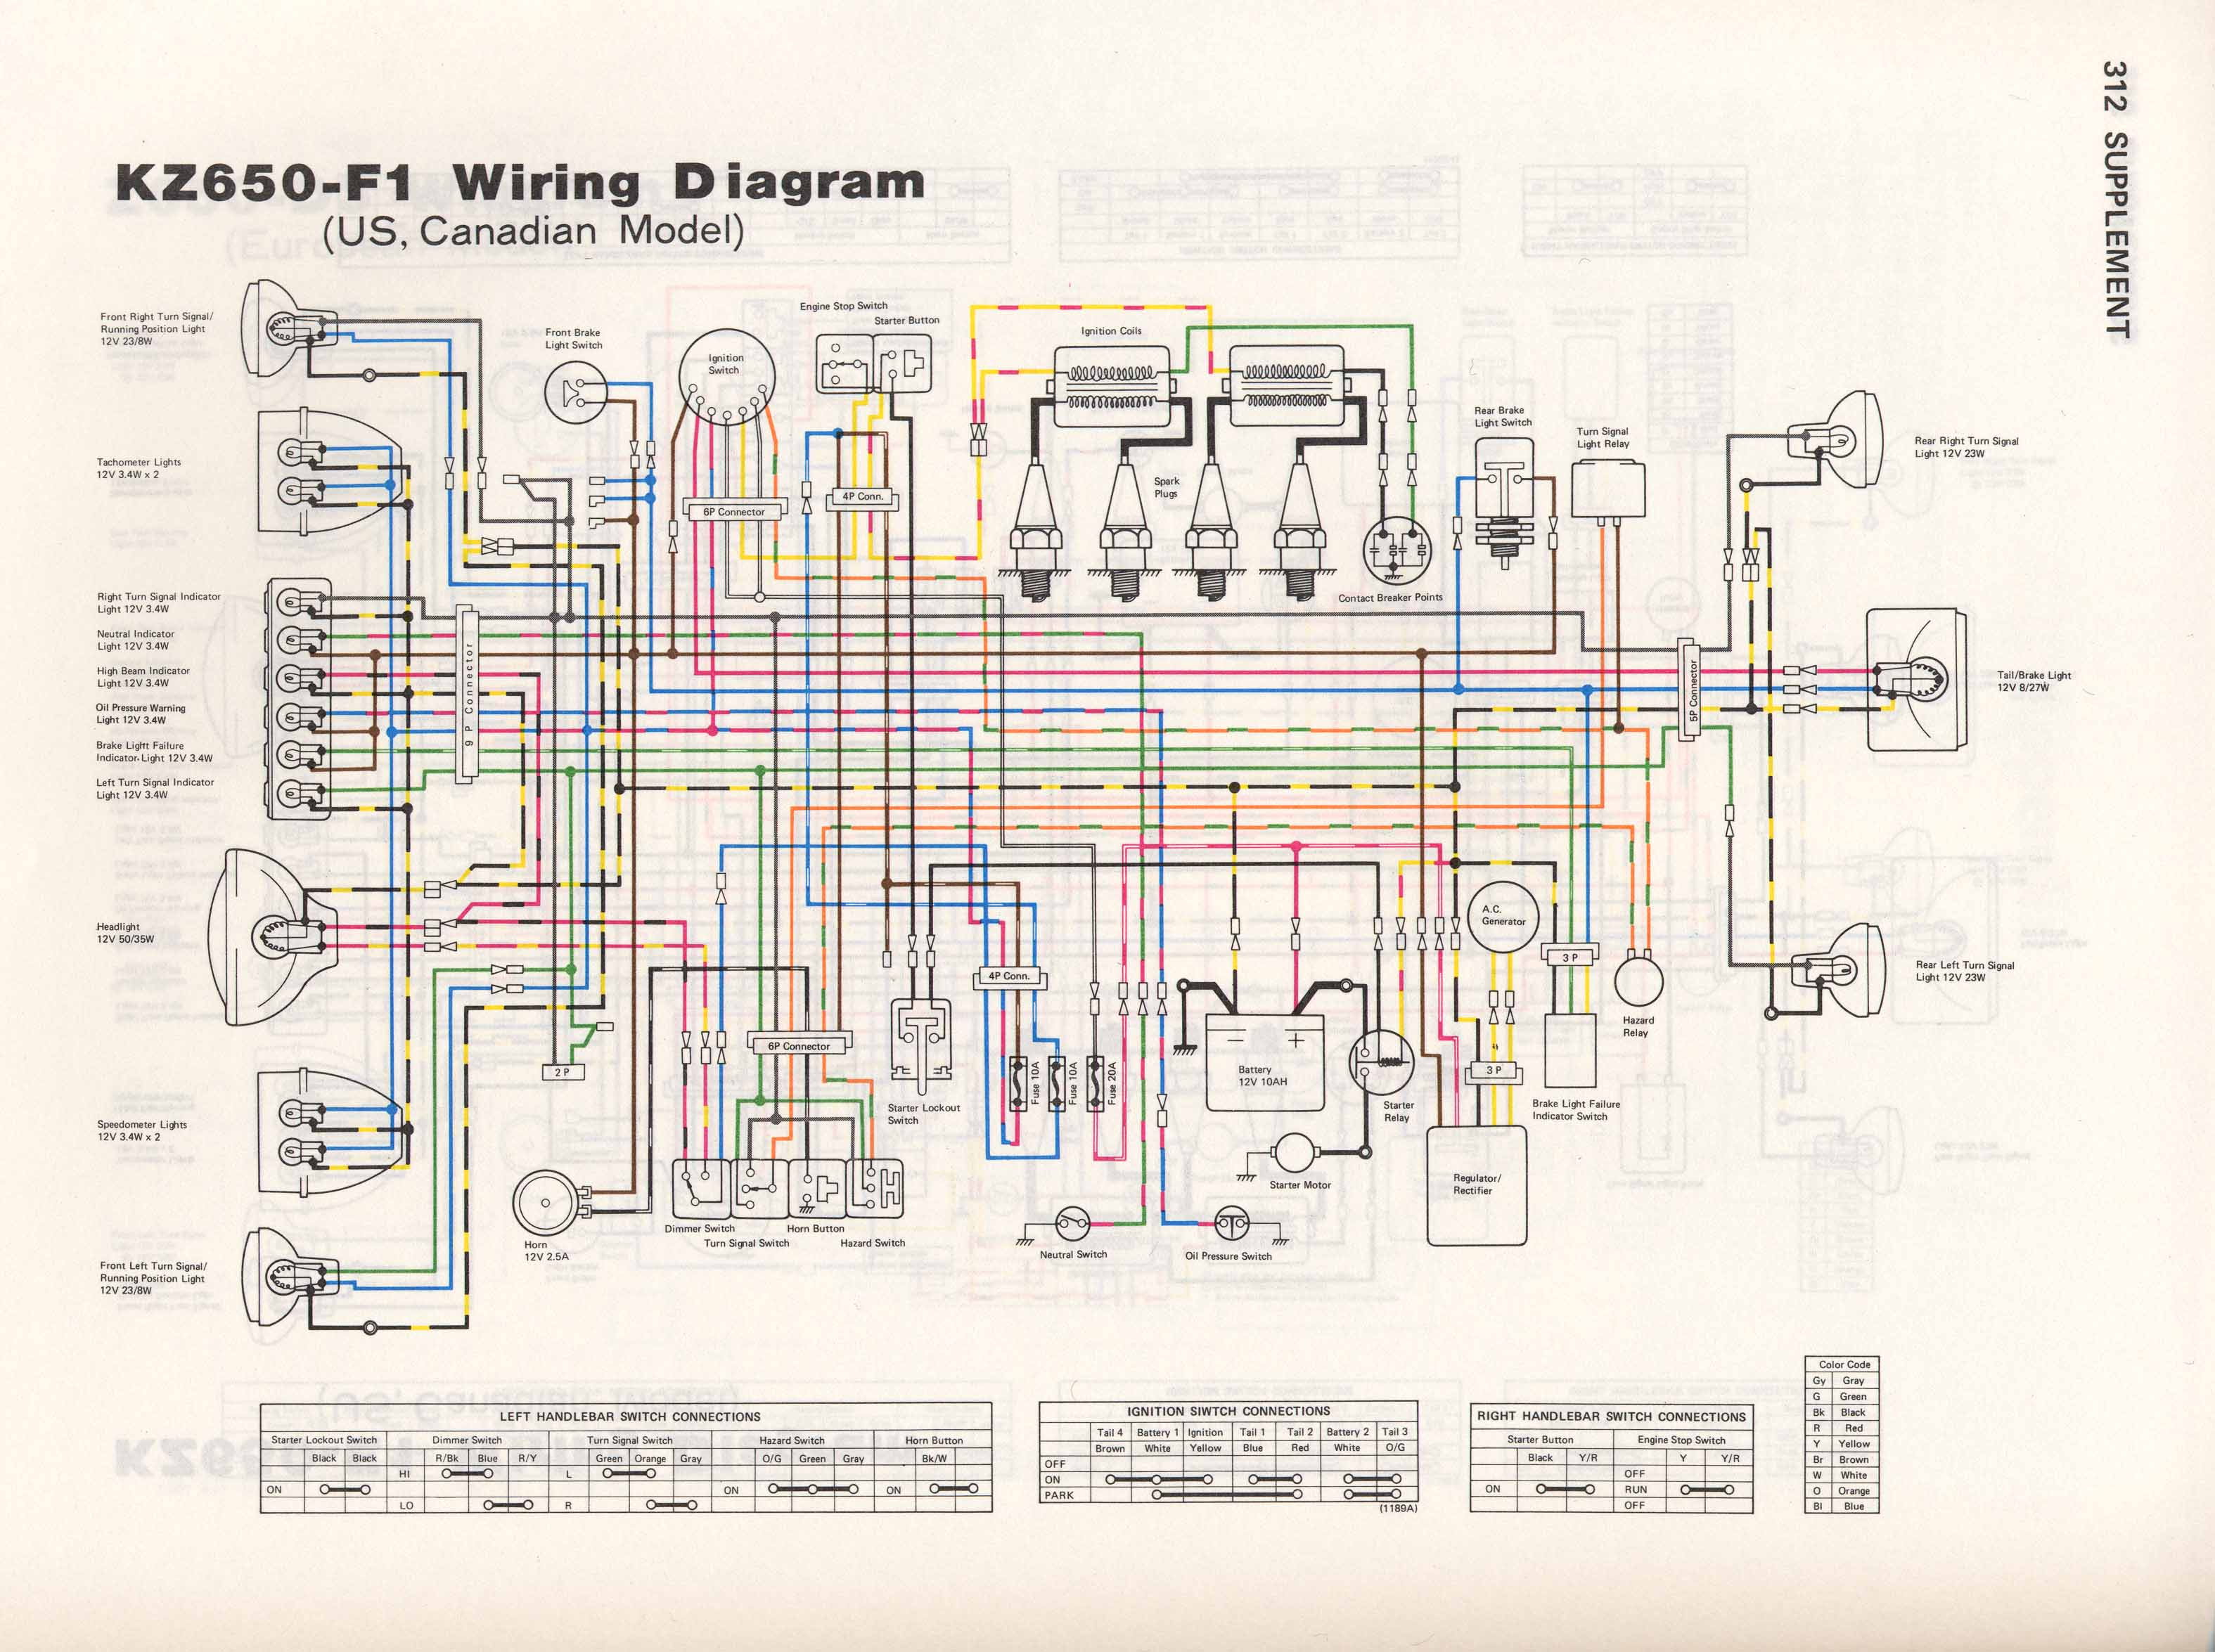 1977 Kawasaki Kz1000 Wiring Diagram Schematics Diagrams Dynatek Ignition Routing U2022 Rh Parntesis Co Dyna Frame